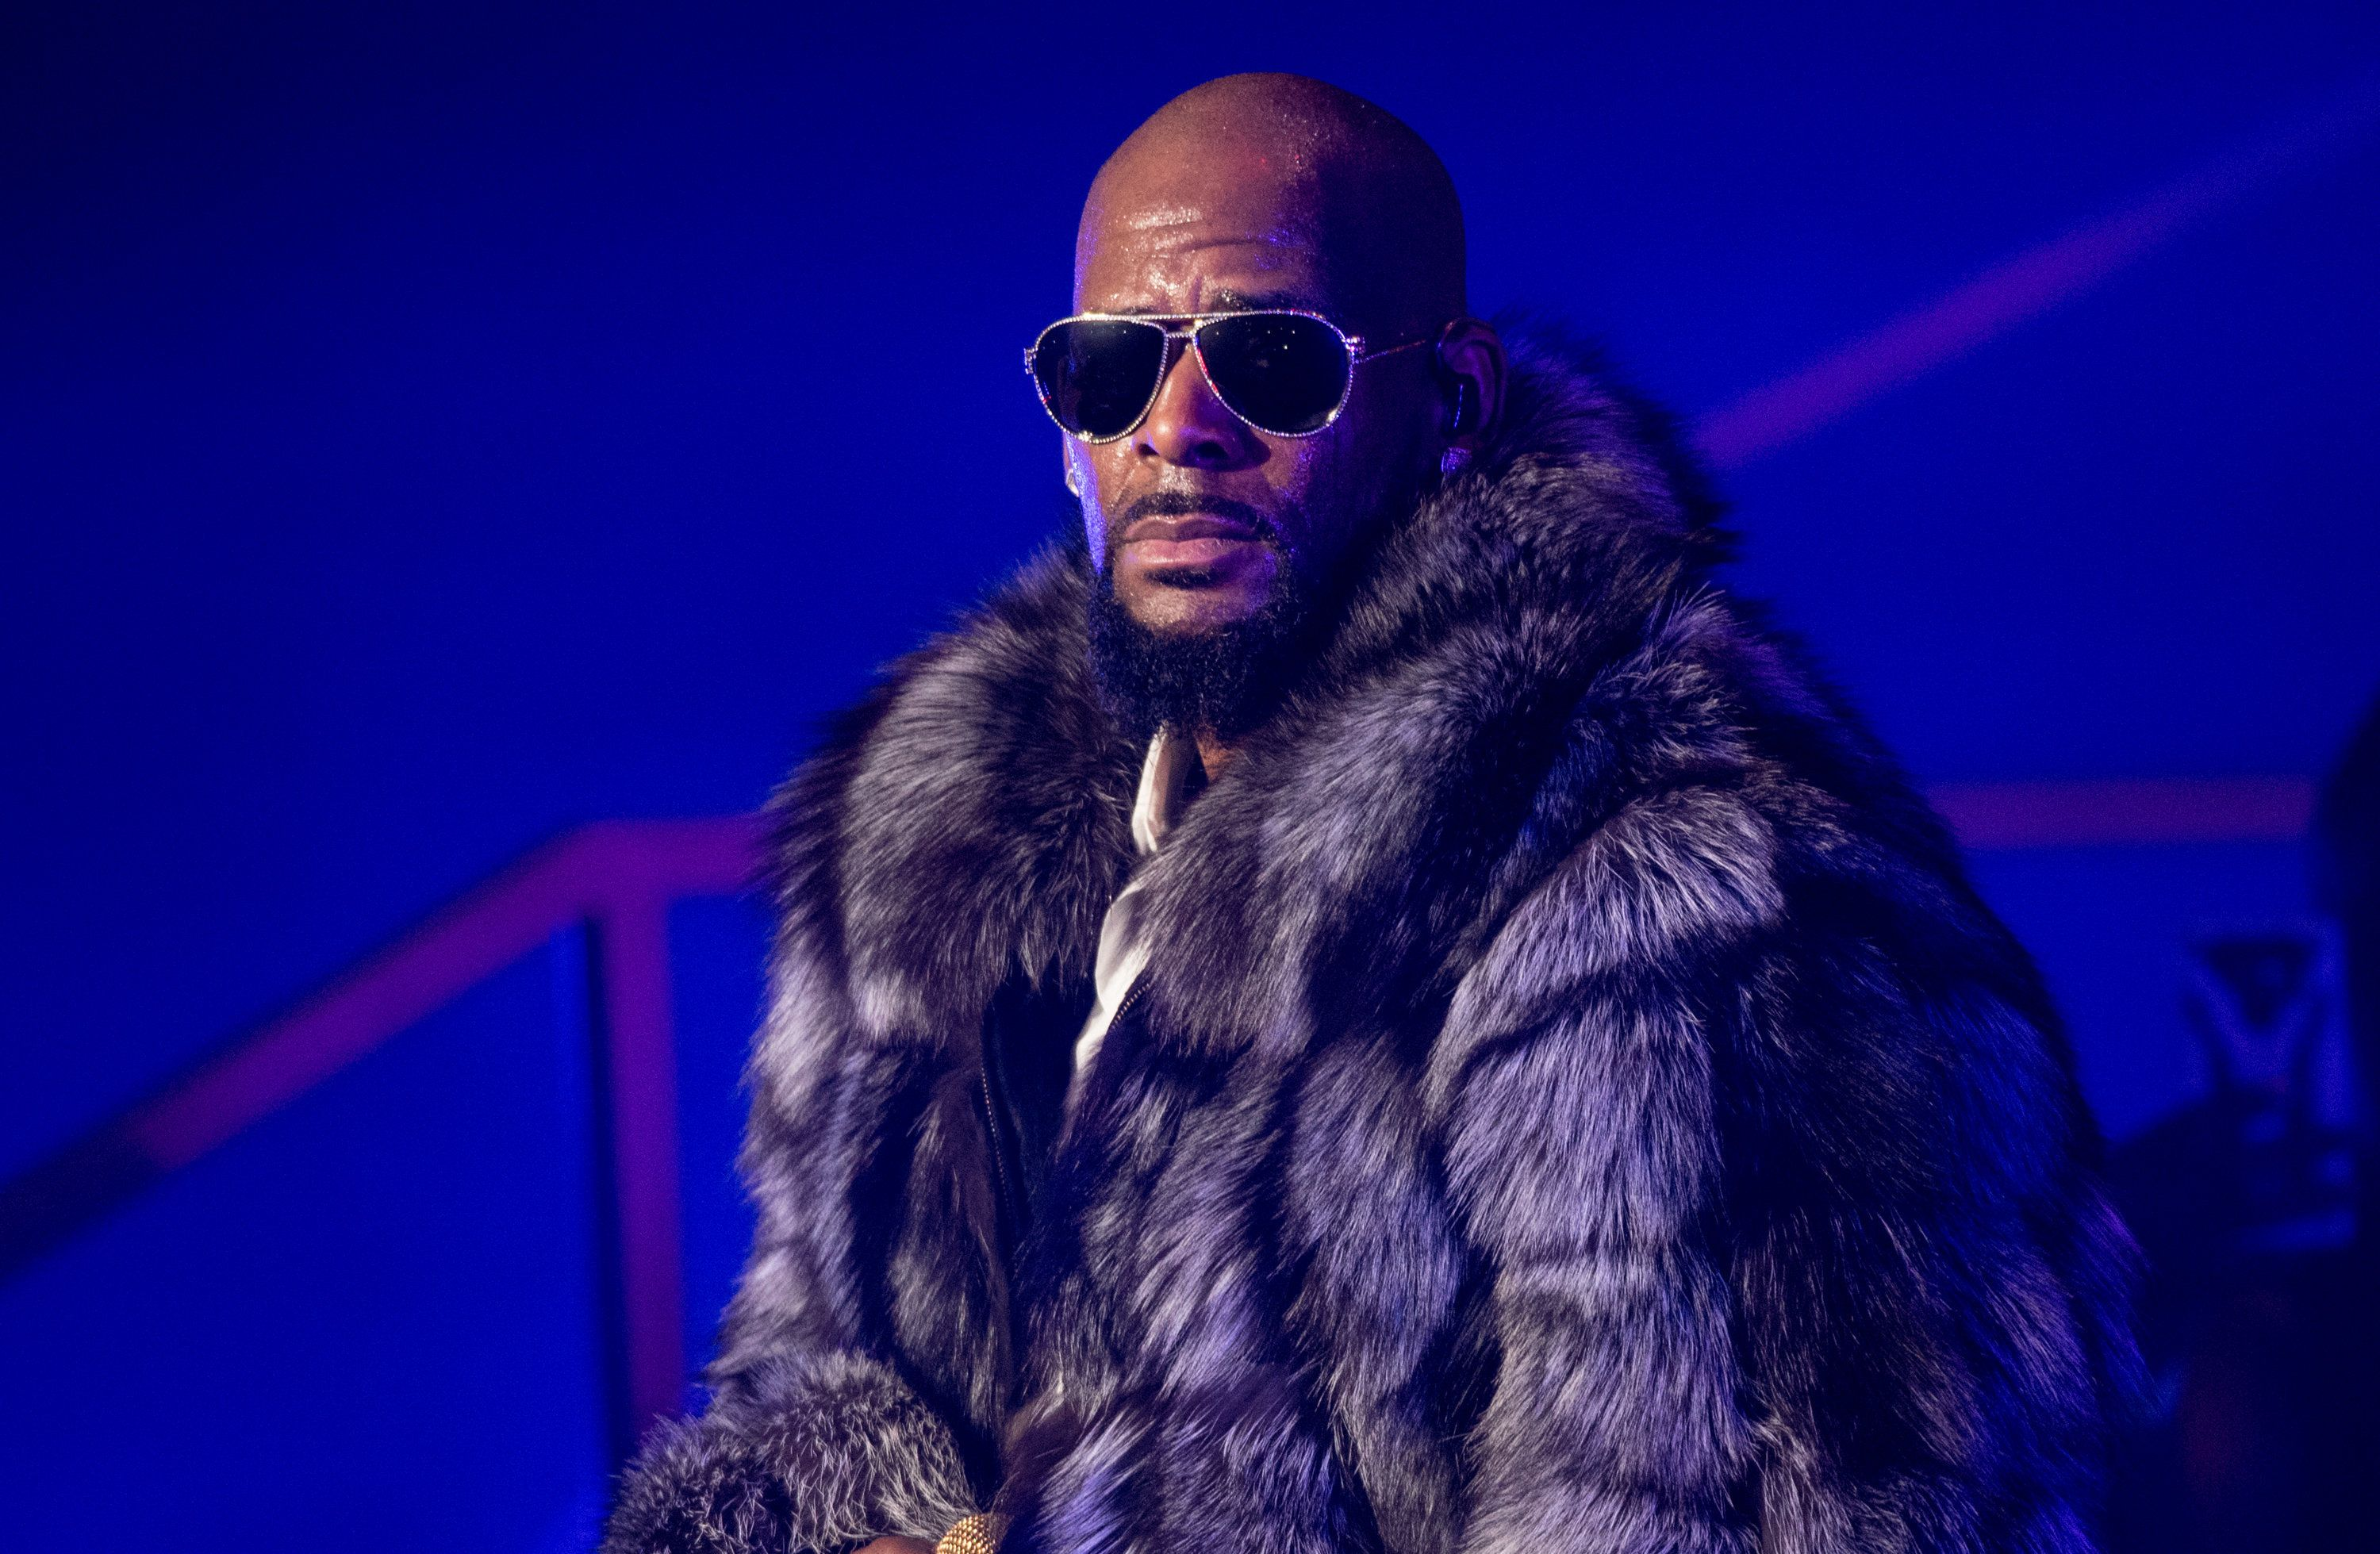 R. Kelly Accused By Woman Of 'Intentionally' Infecting Her With STI